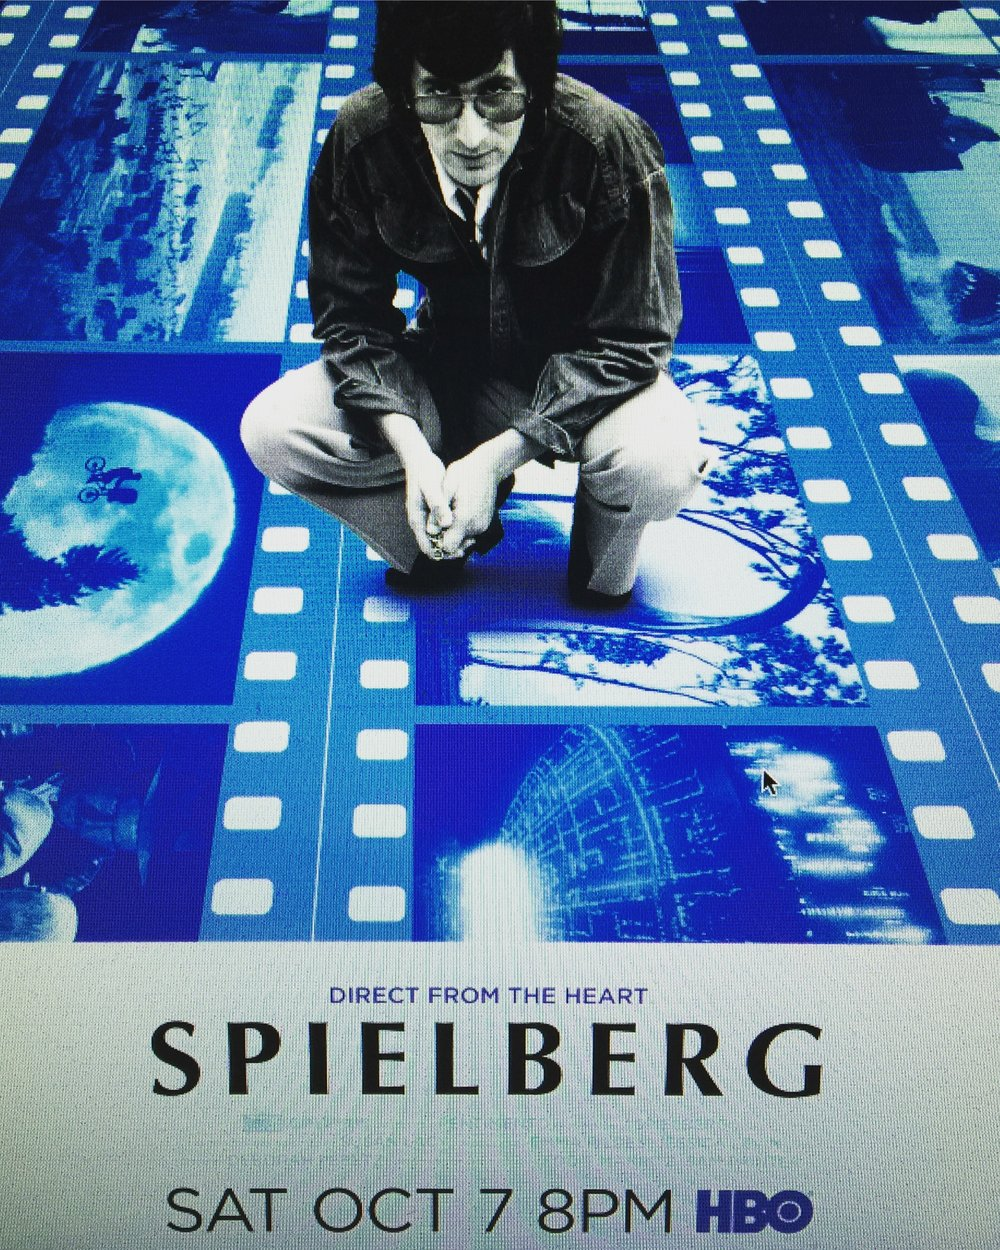 Steven Spielberg Documentary on HBO